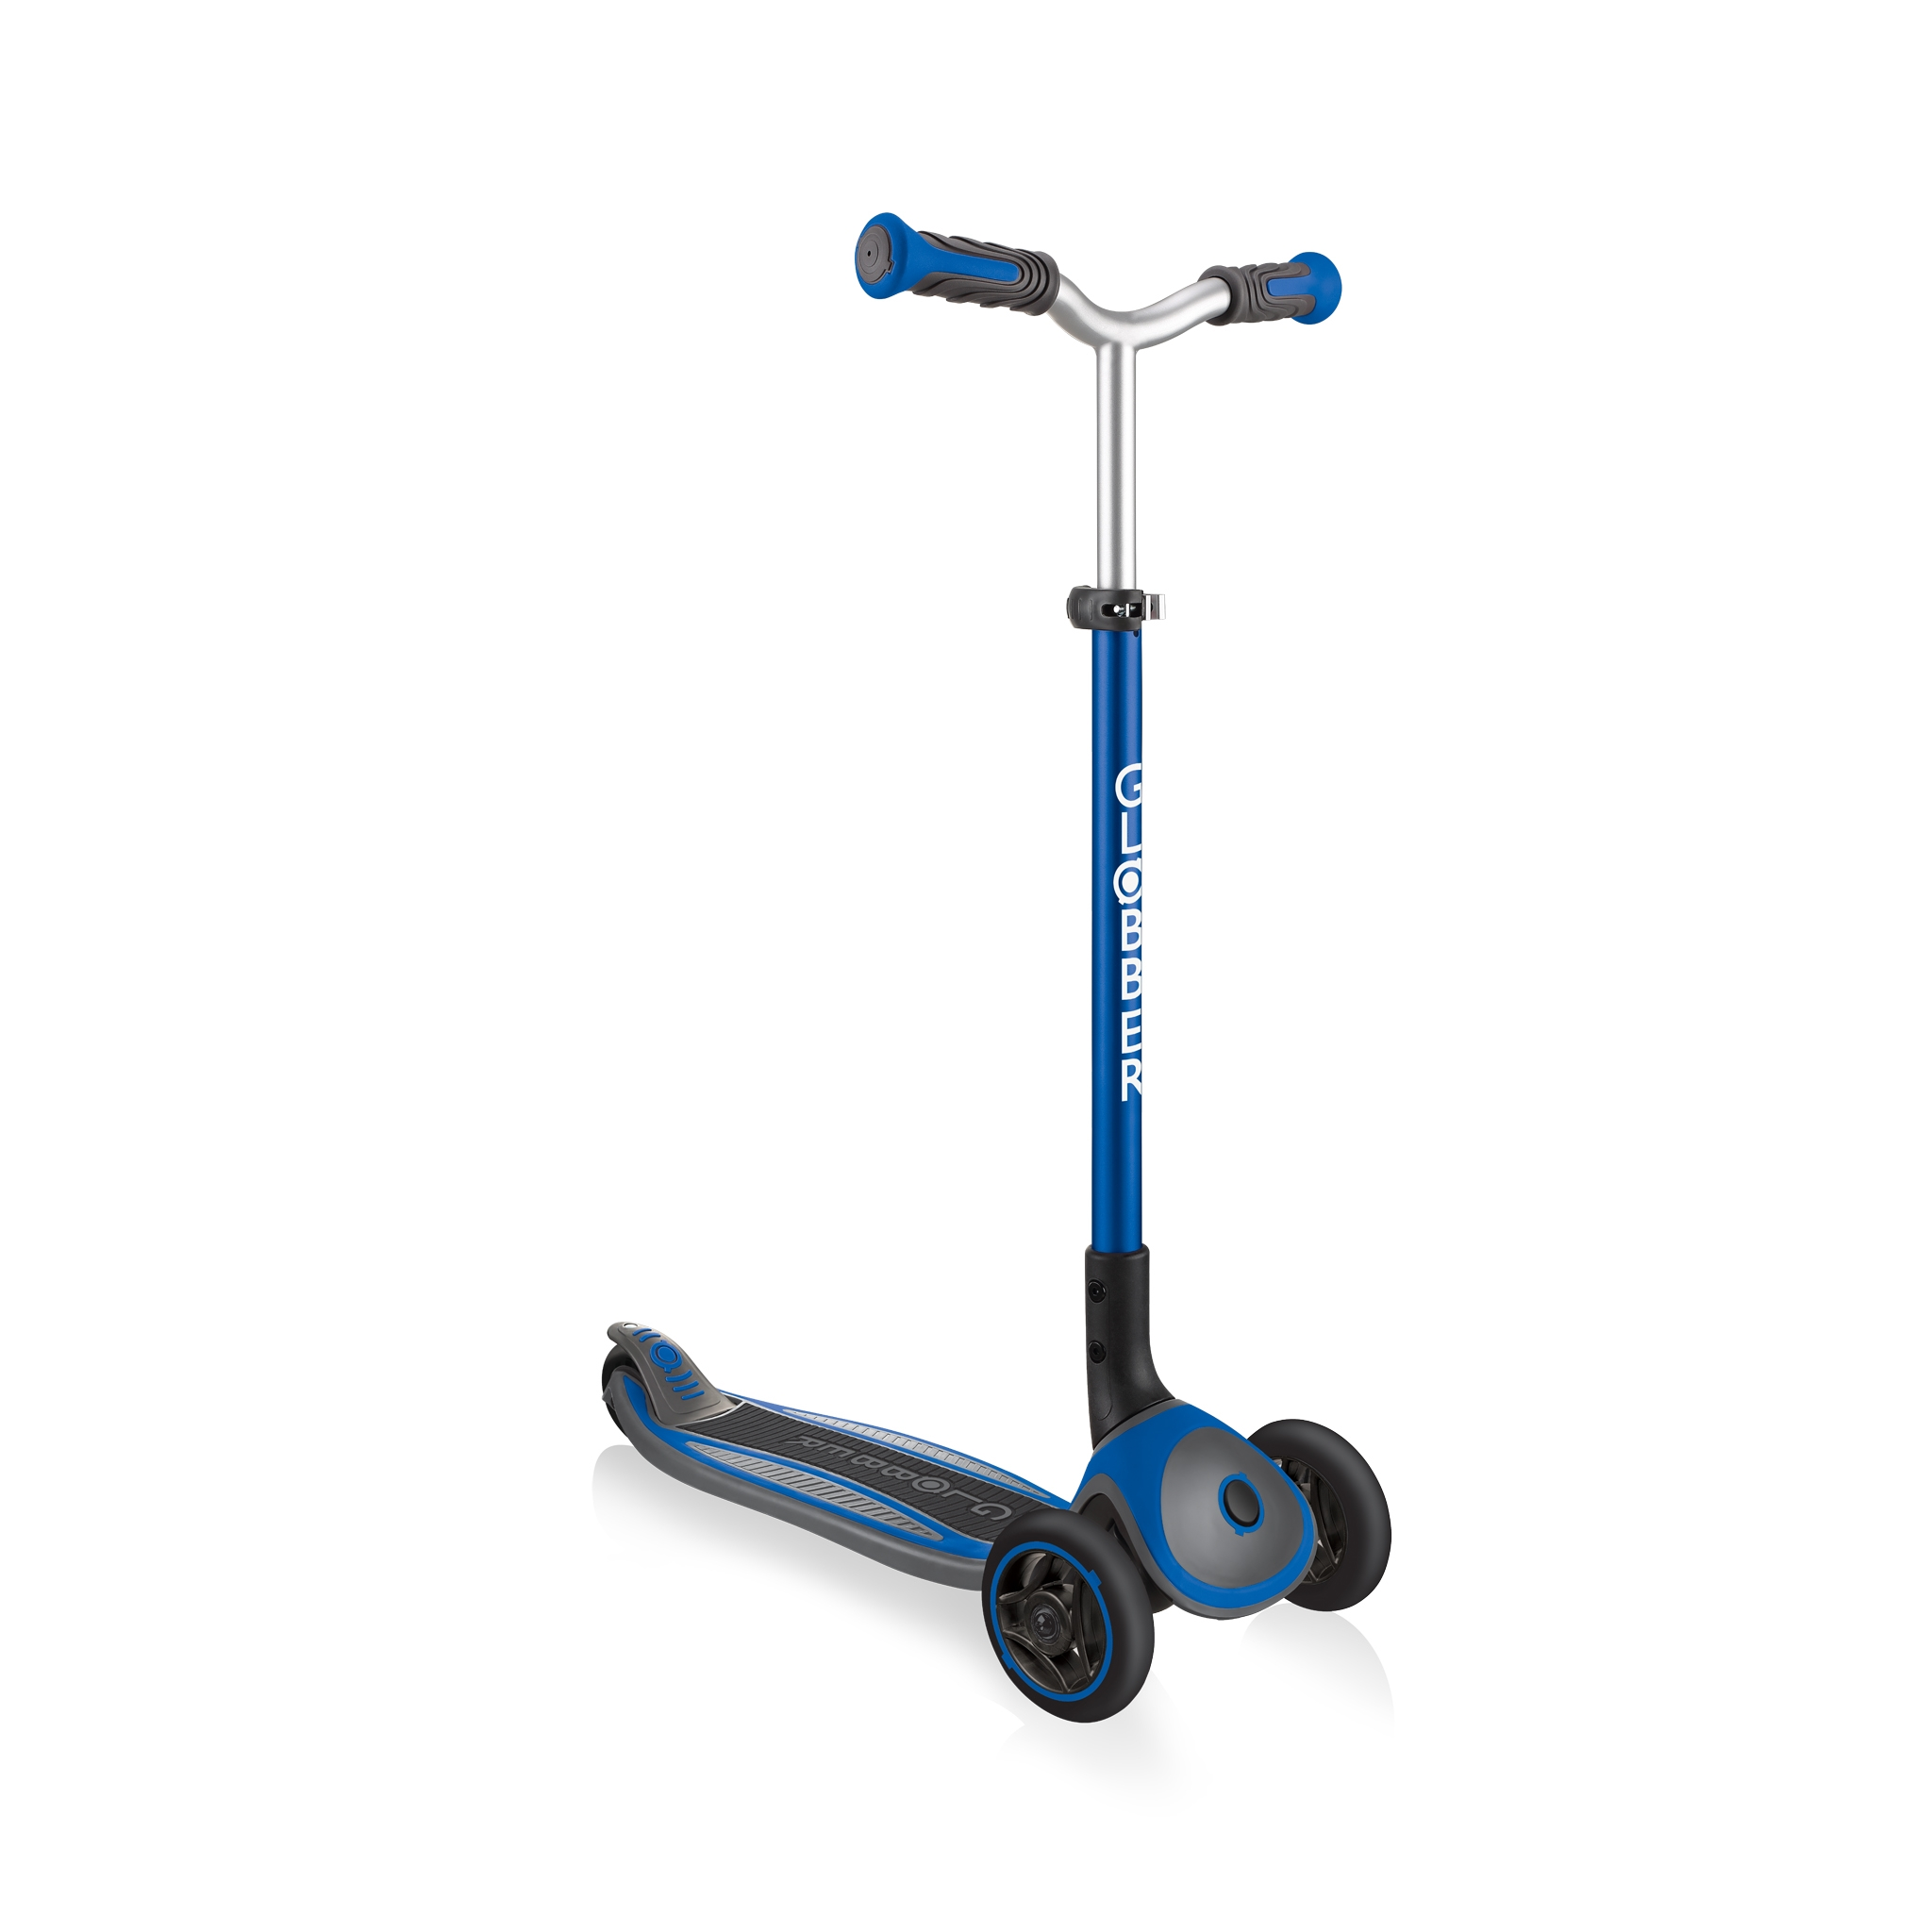 Globber-MASTER-premium-3-wheel-foldable-scooters-for-kids-aged-4-to-14_dark-blue 1